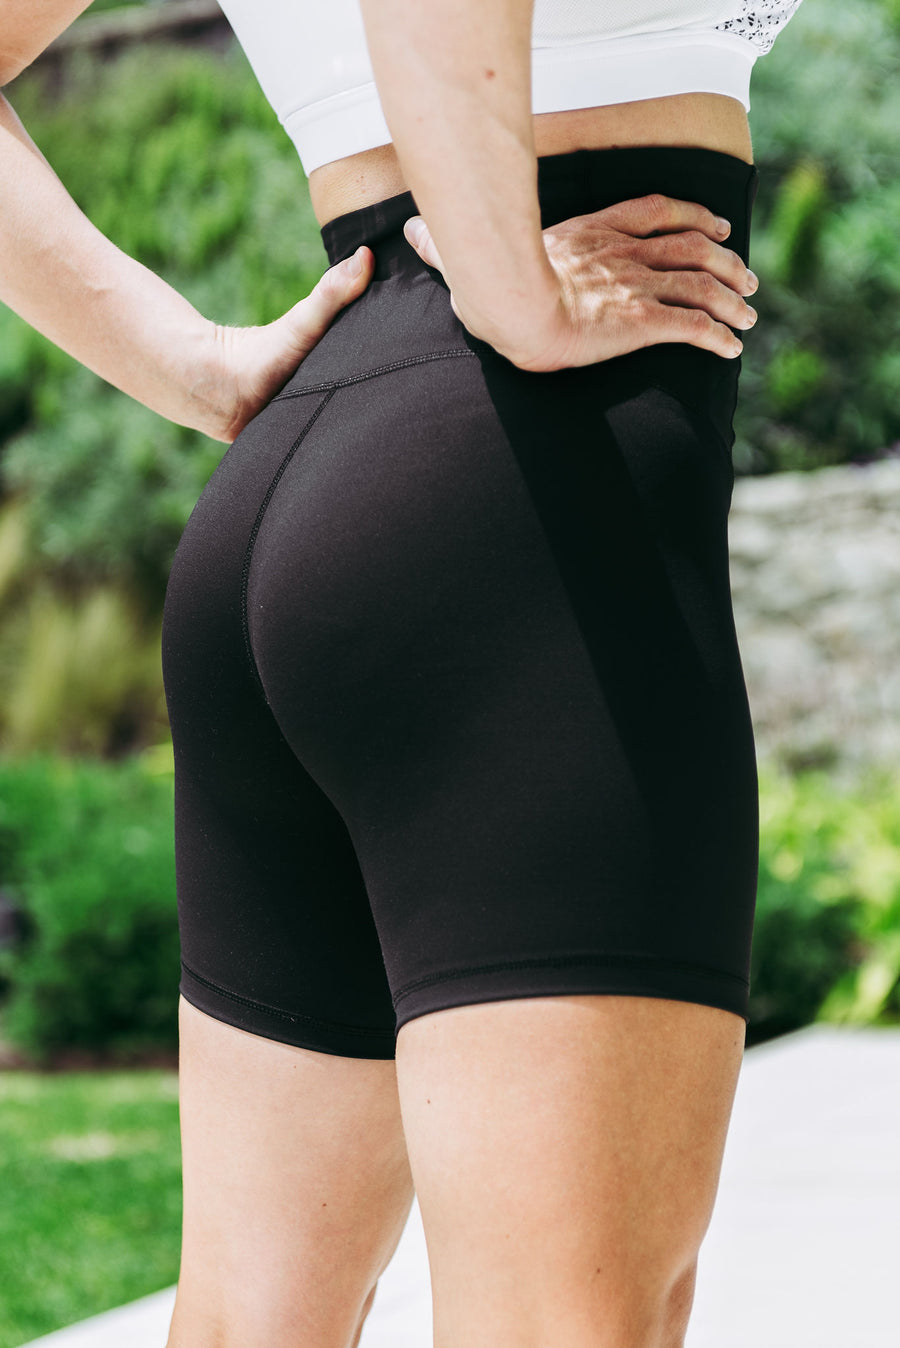 Pregnancy + Postpartum RECOVERY Shorts - Black